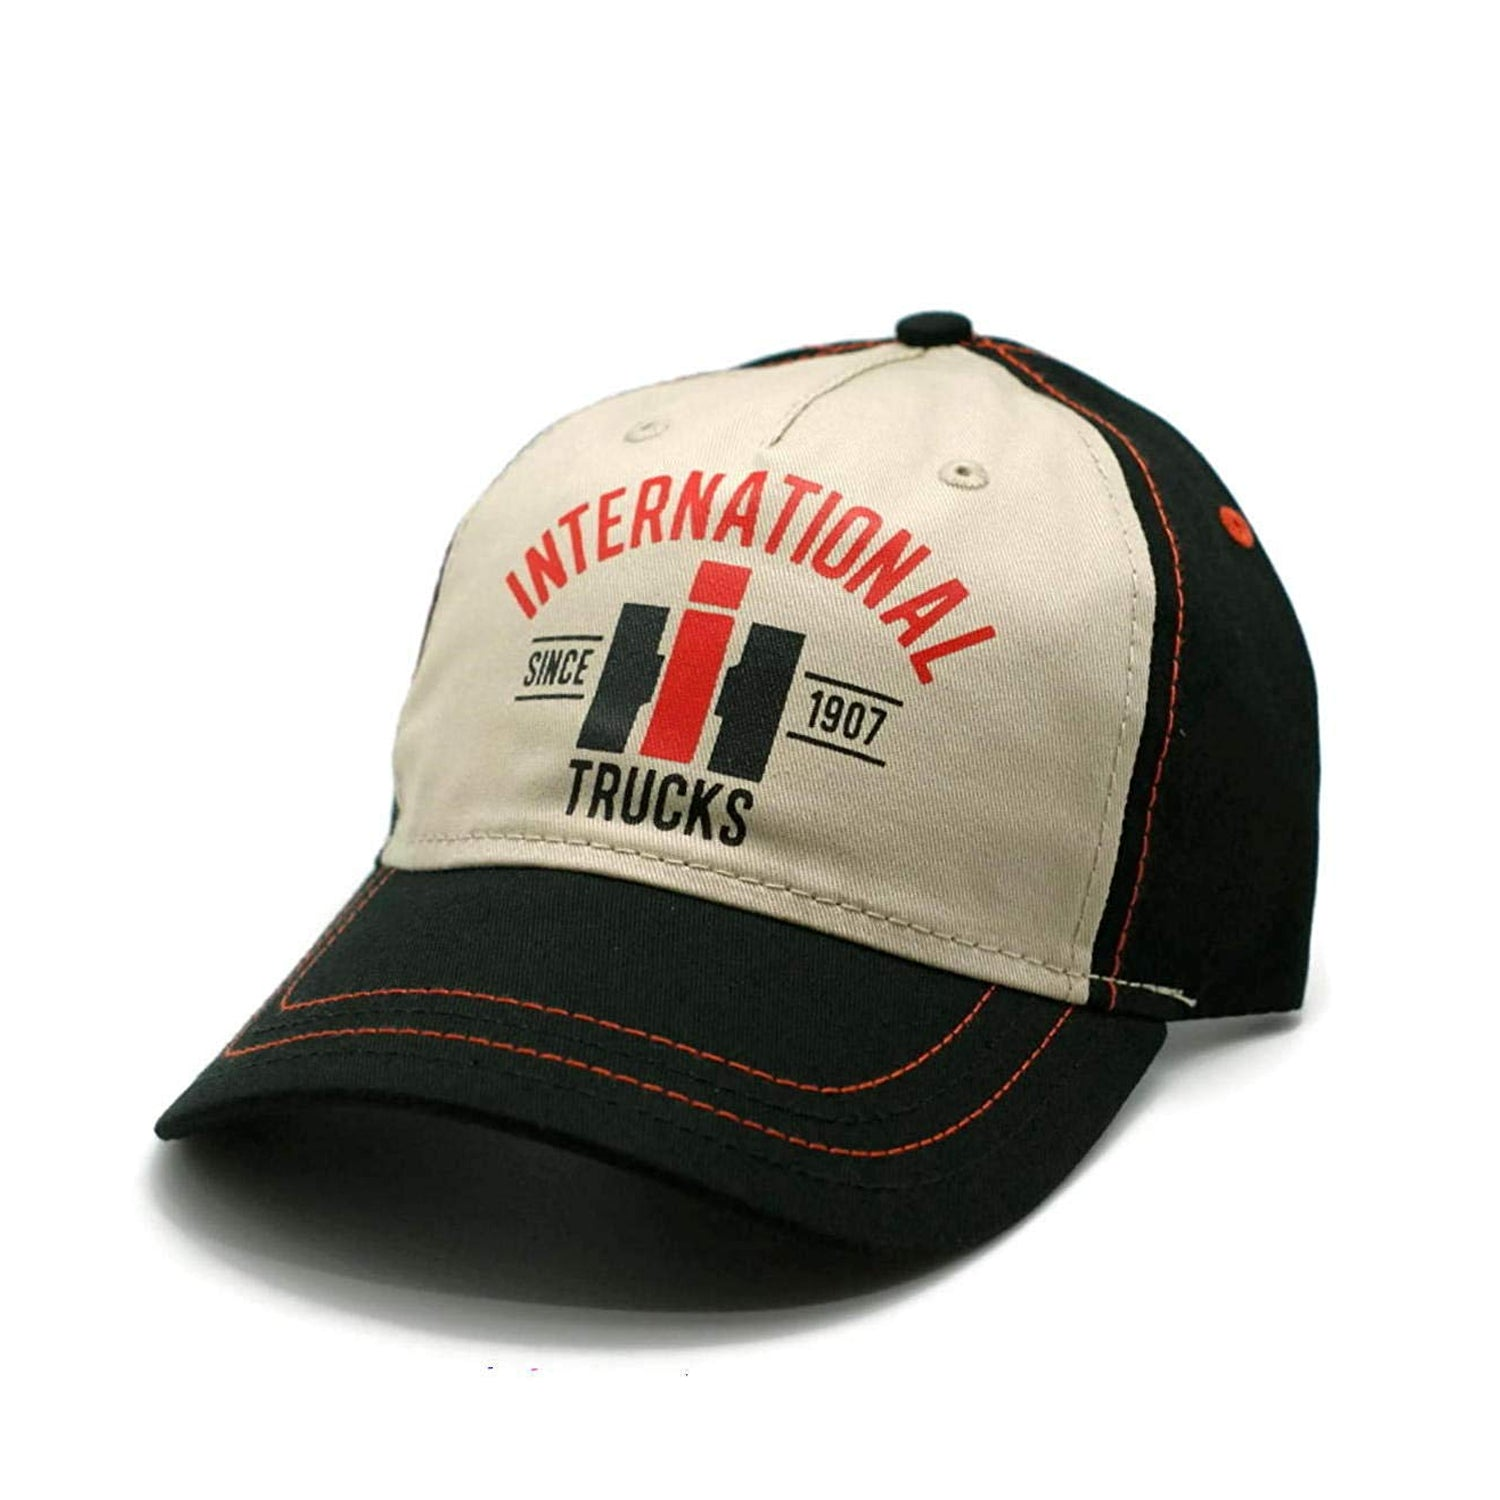 96ee7e344b9 H3 Headwear International Trucks Since 1907 Logo Adjustable Hat ...